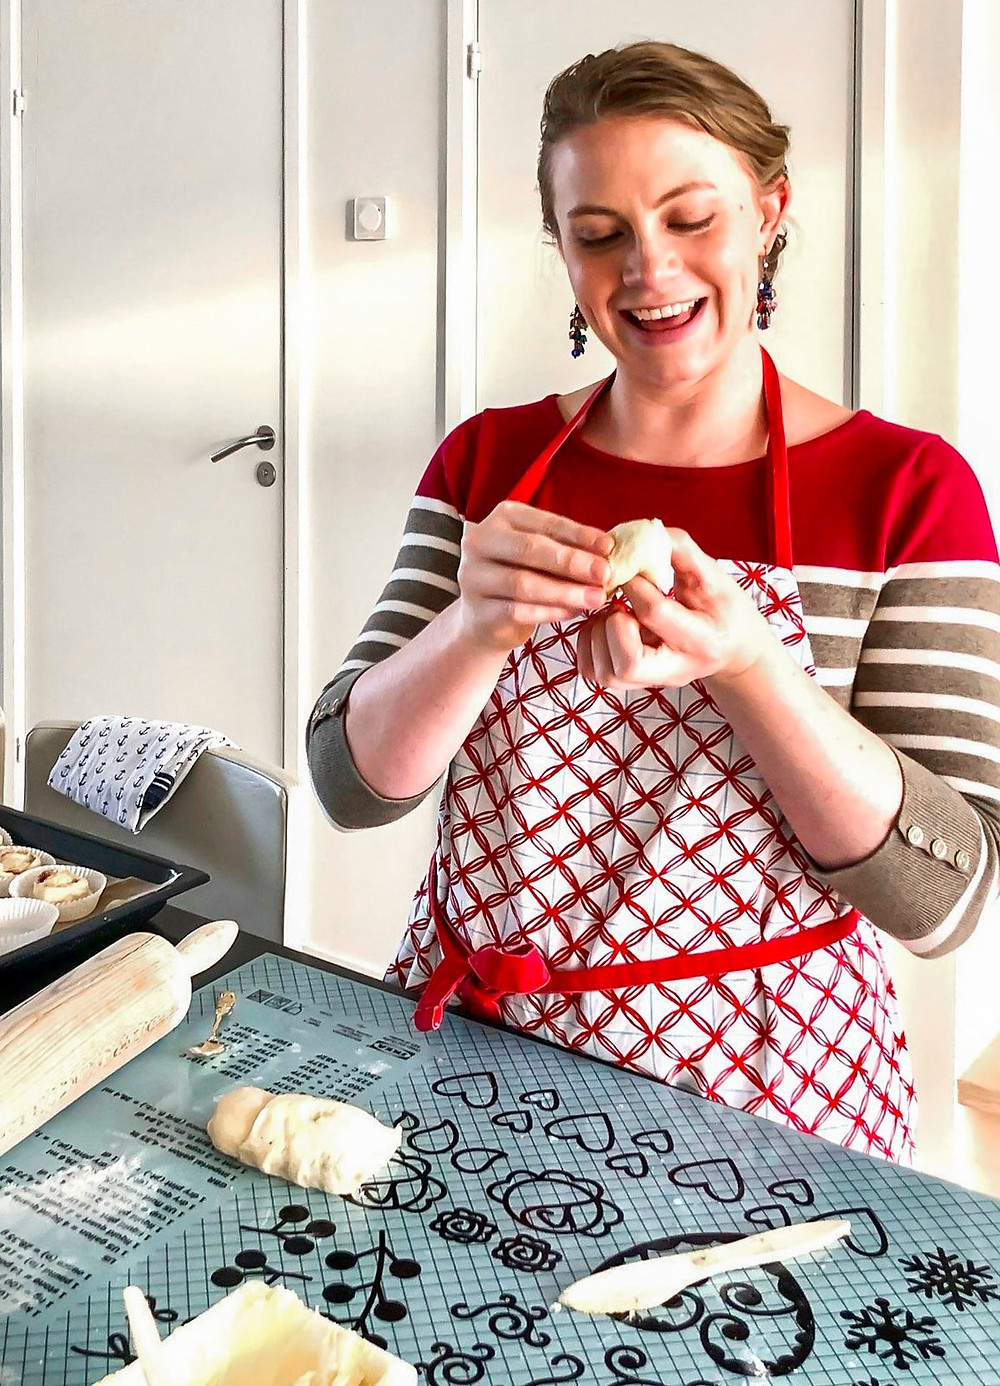 Make Swedish Pastries with a Pro Baker online experience from Airbnb